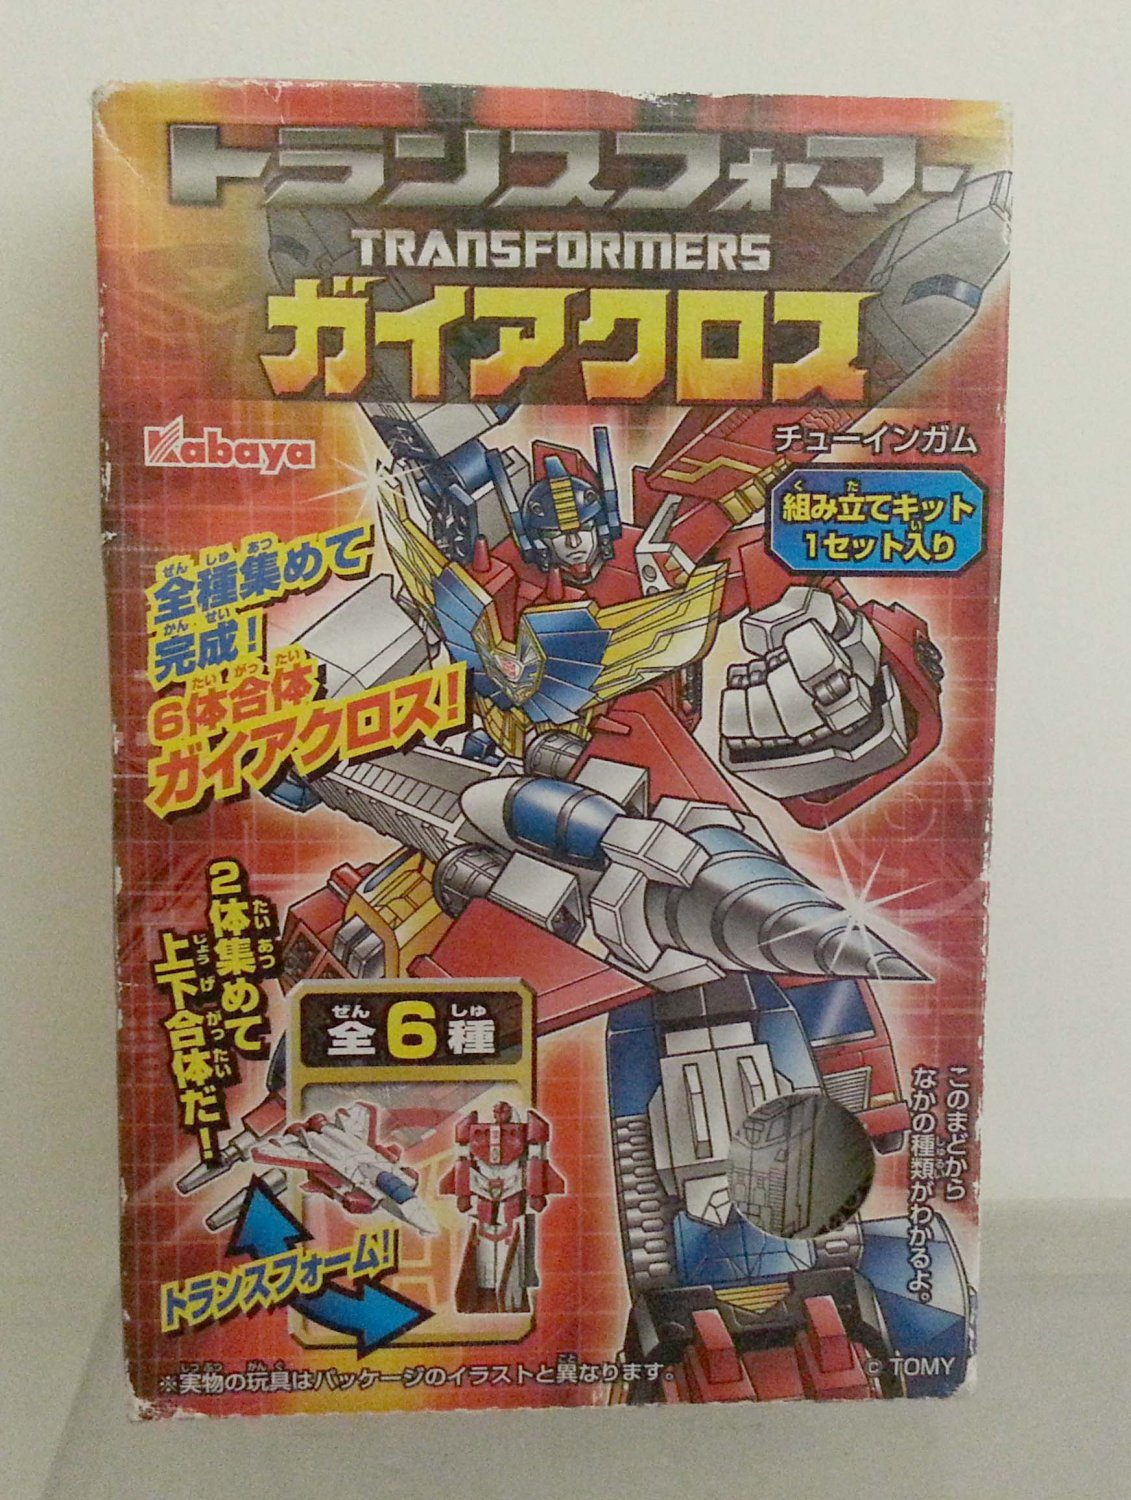 Kabaya Tomy Transformer Gaia Land Cross Candy Toy Model Kit #5 Made in Japan